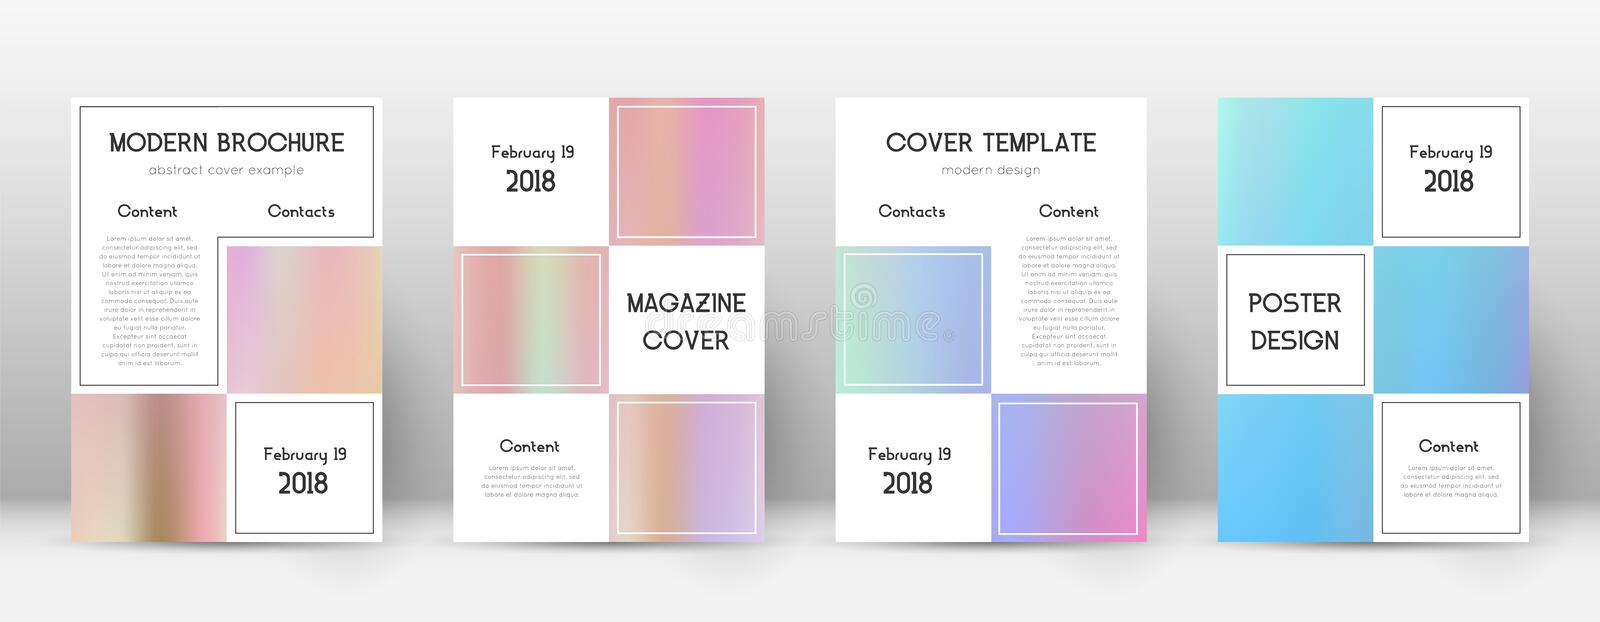 Flyer layout. Business beauteous template for Brochure, Annual Report, Magazine, Poster, Corporate Presentation, Portfolio, Flyer. Alive pastel hologram cover vector illustration